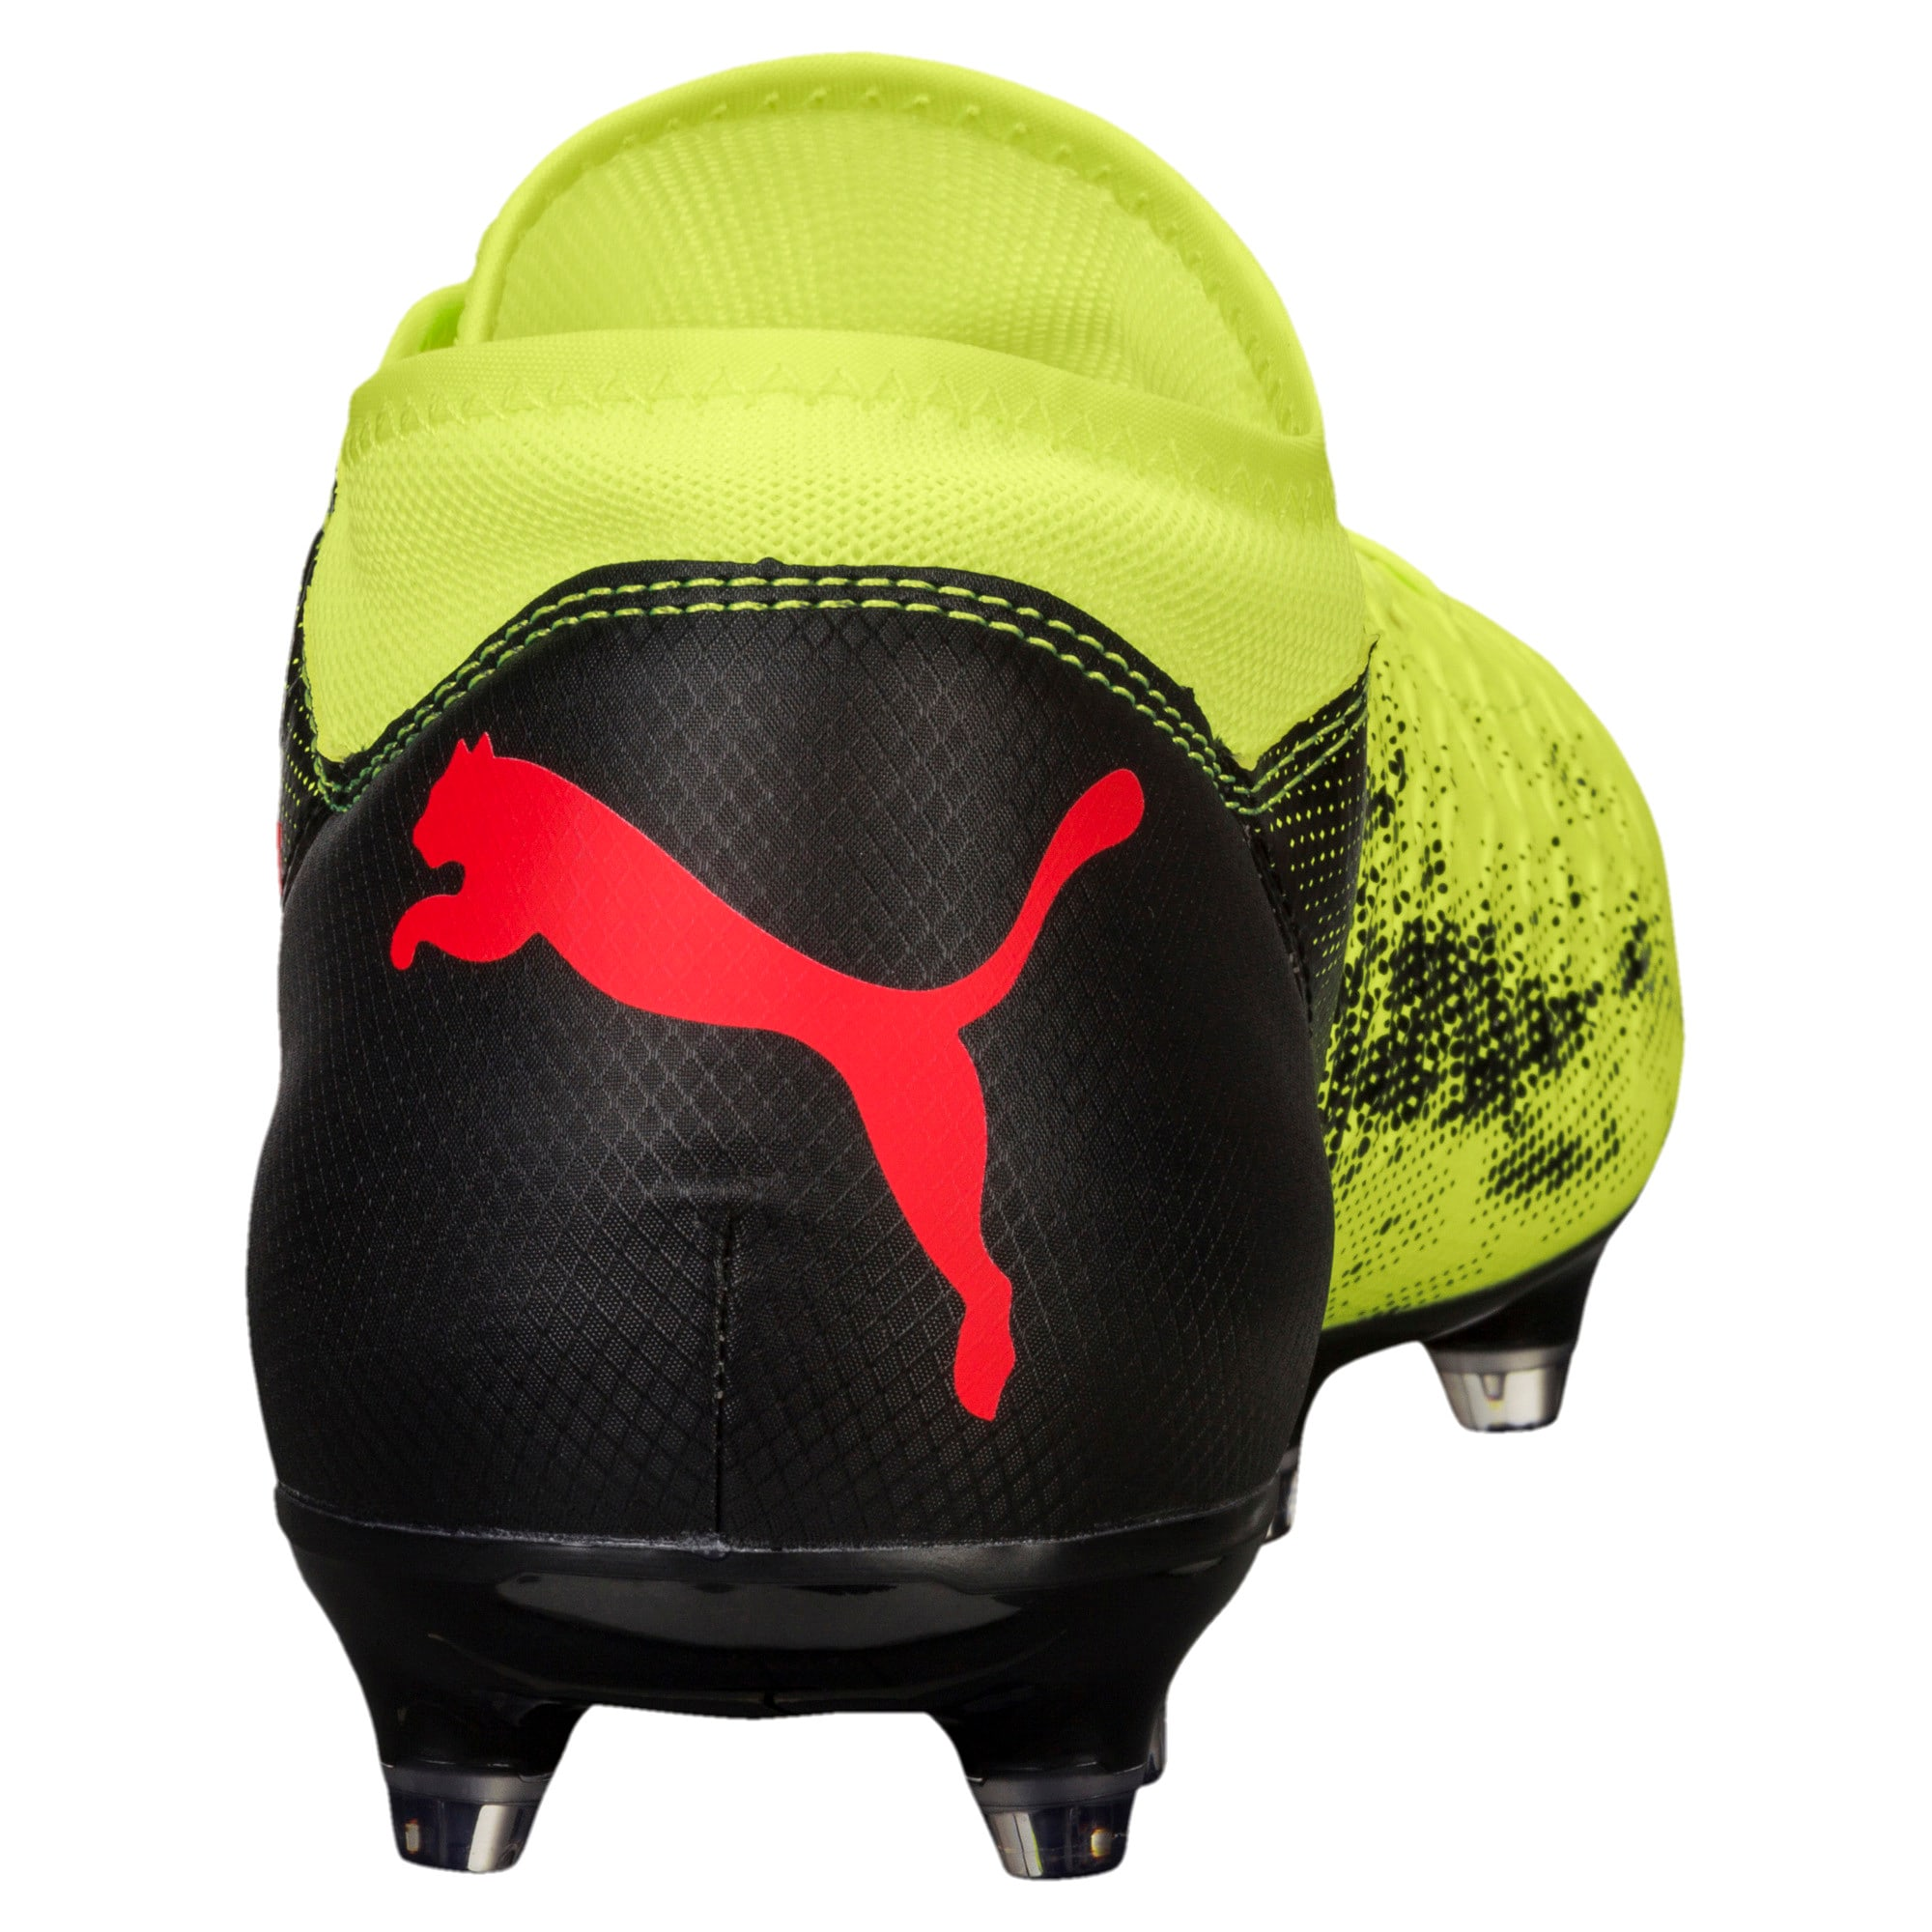 Thumbnail 3 of FUTURE 18.4 FG/AG Men's Football Boots, Yellow-Red-Black, medium-IND